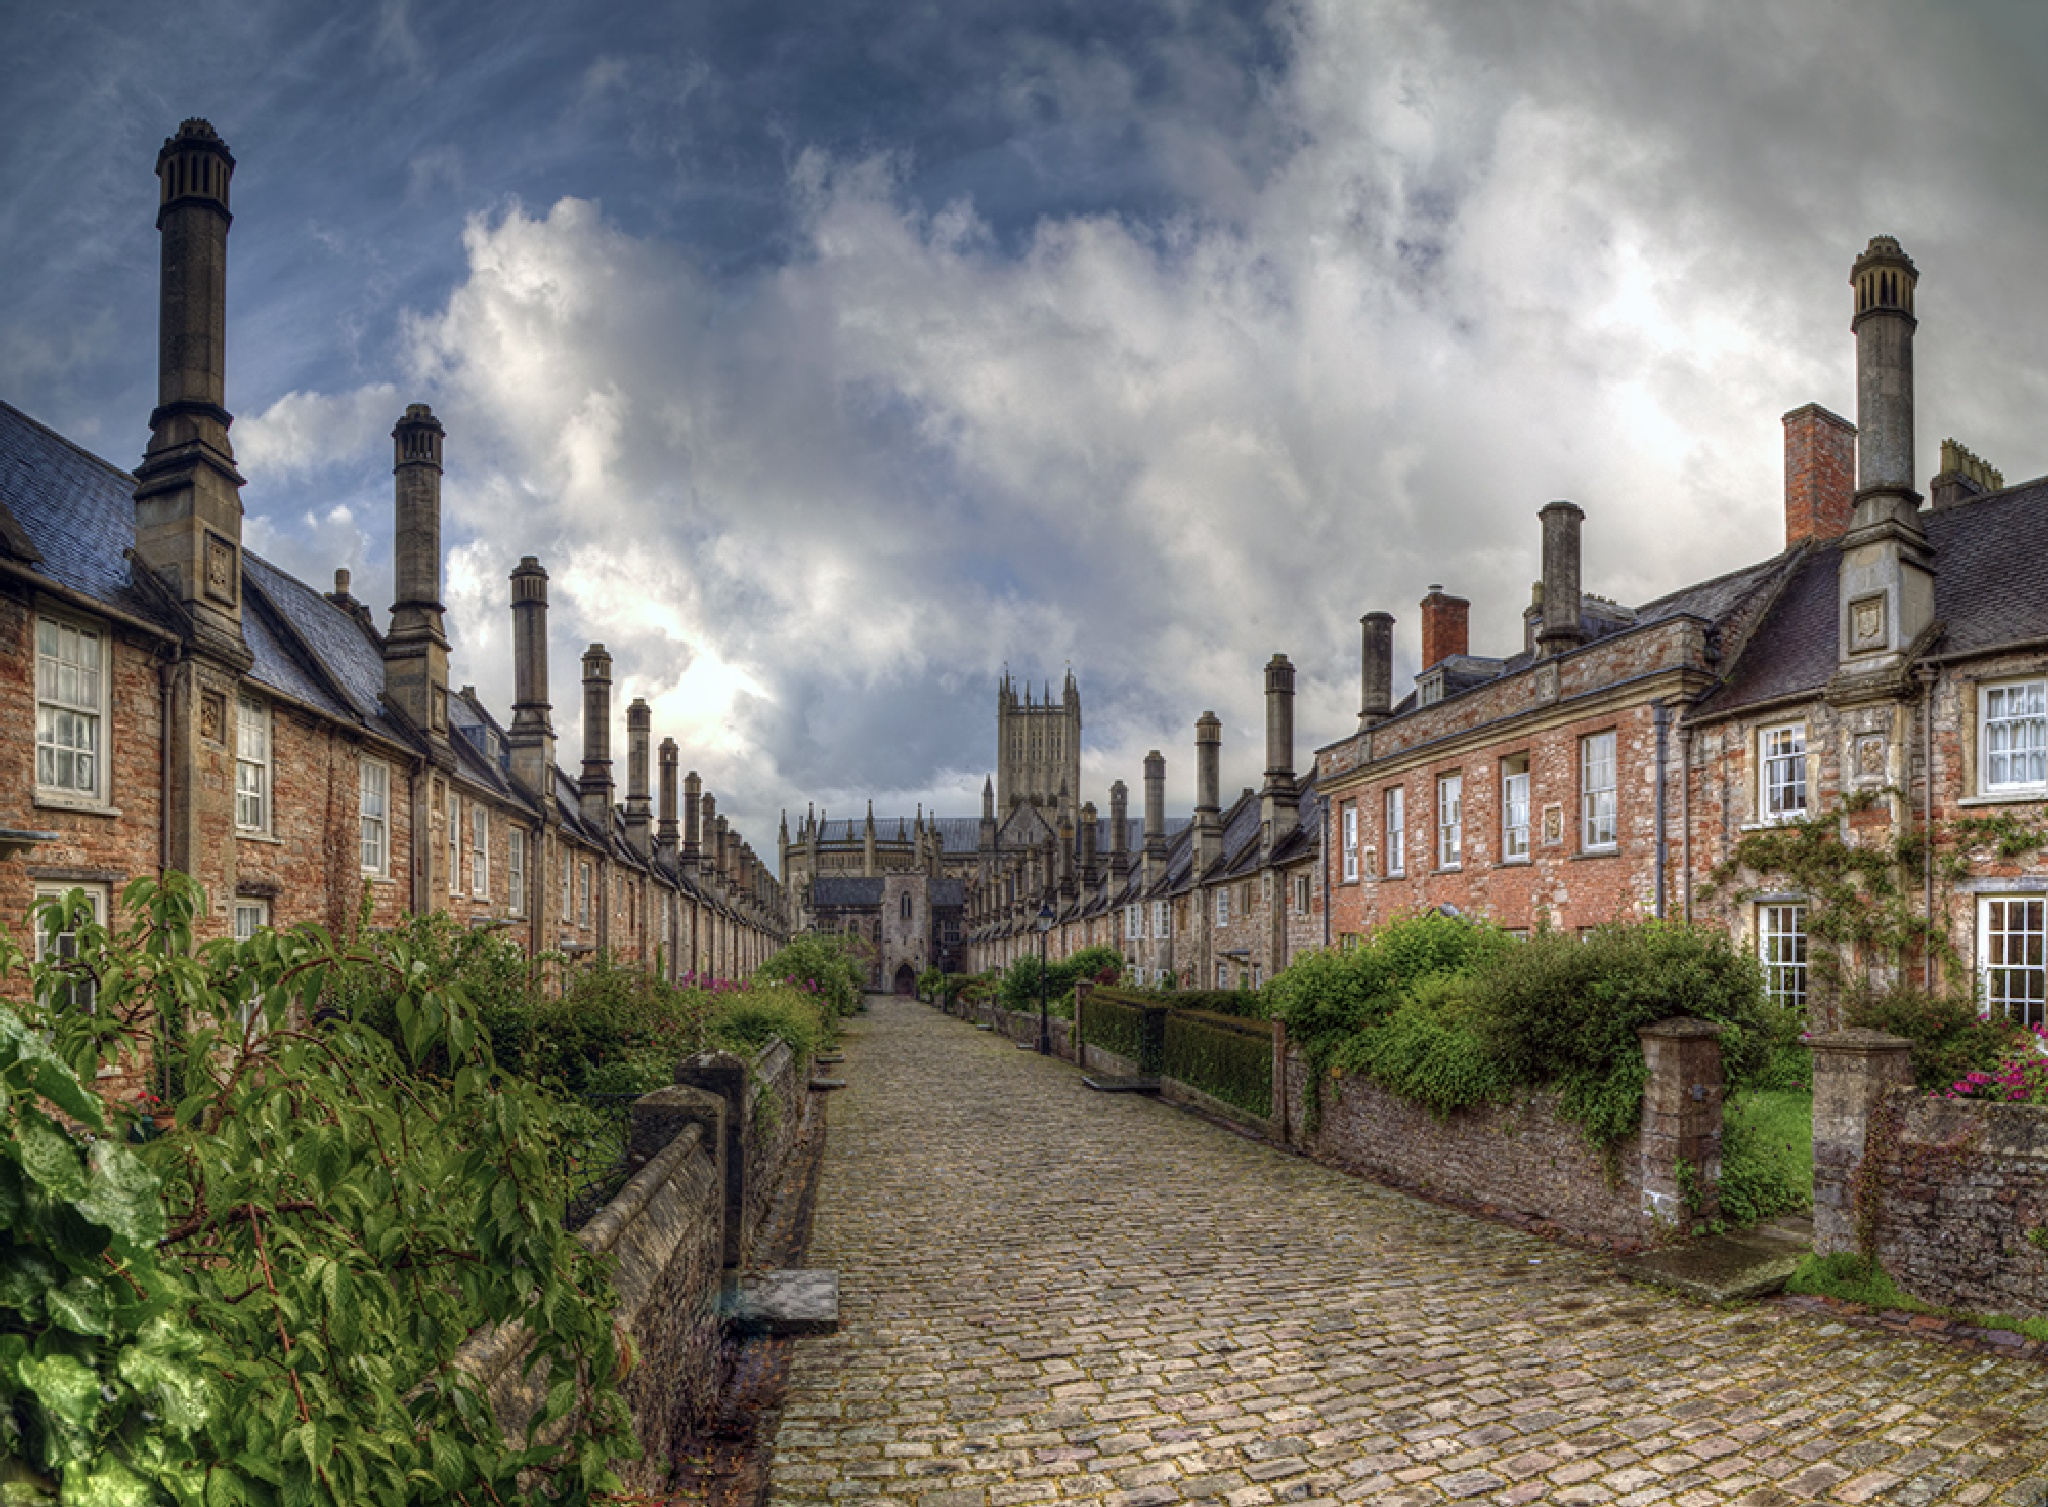 Vicars close, Wells by kbr61263